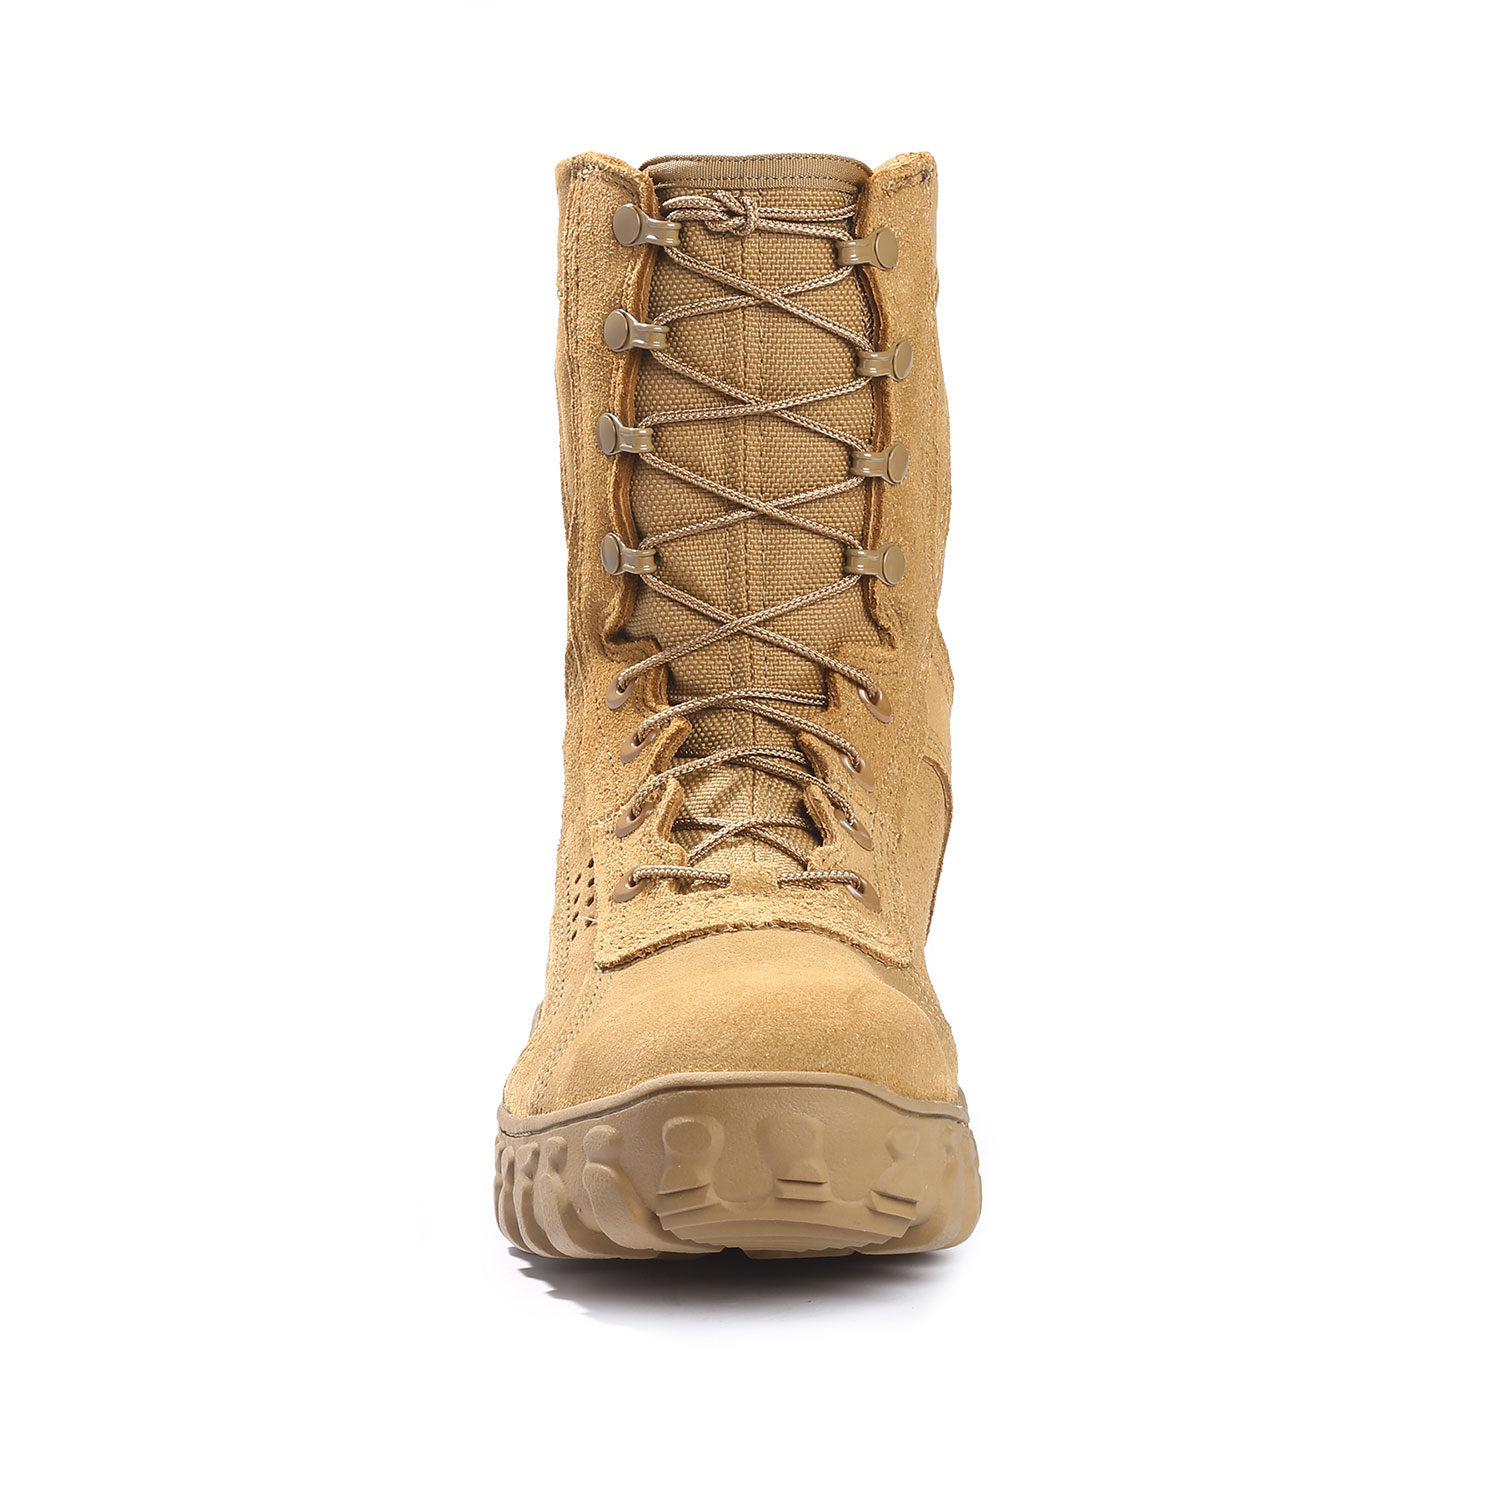 8b1ae946873 Rocky S2V Steel Toe Tactical Military Boot.